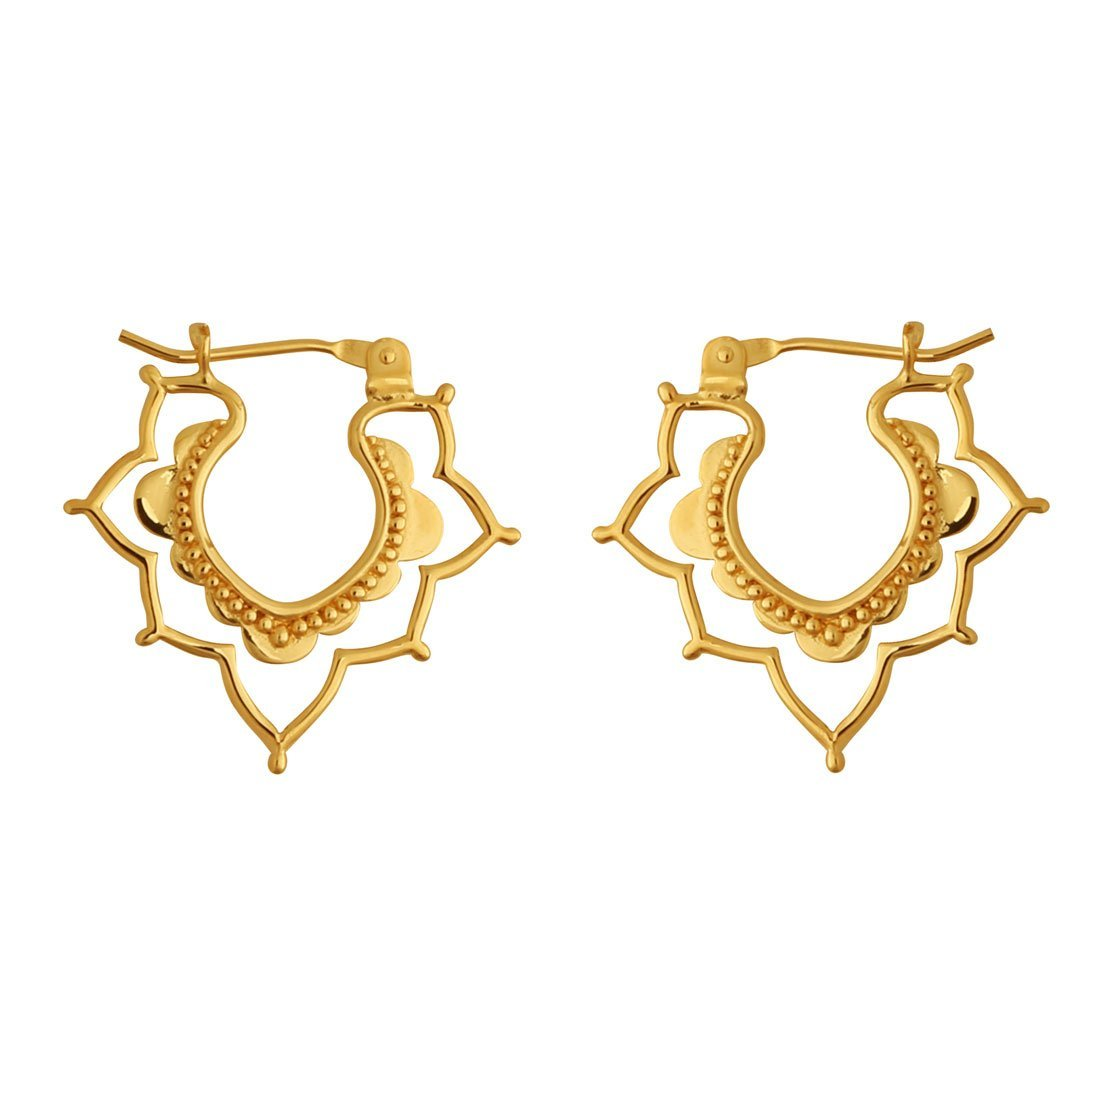 Gold Templum Exotica Sleeper Earrings